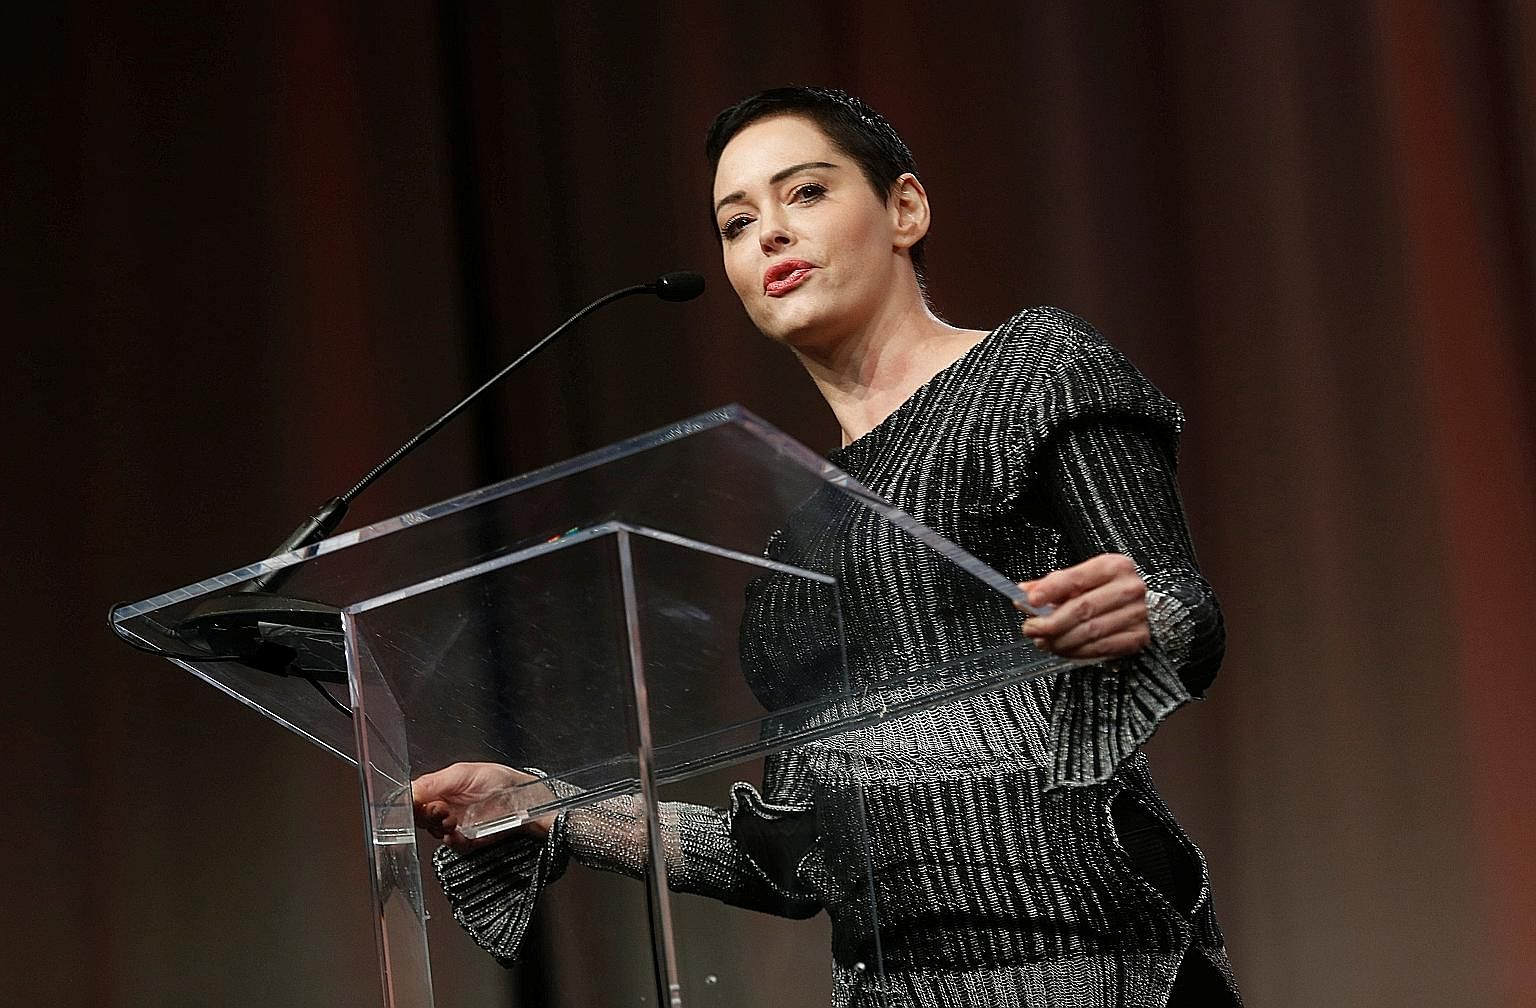 Actress Rose McGowan (left) has lashed out at her fellow actresses, who intend to wear black to the Golden Globes next month to protest sexual harassment and assault in Hollywood.